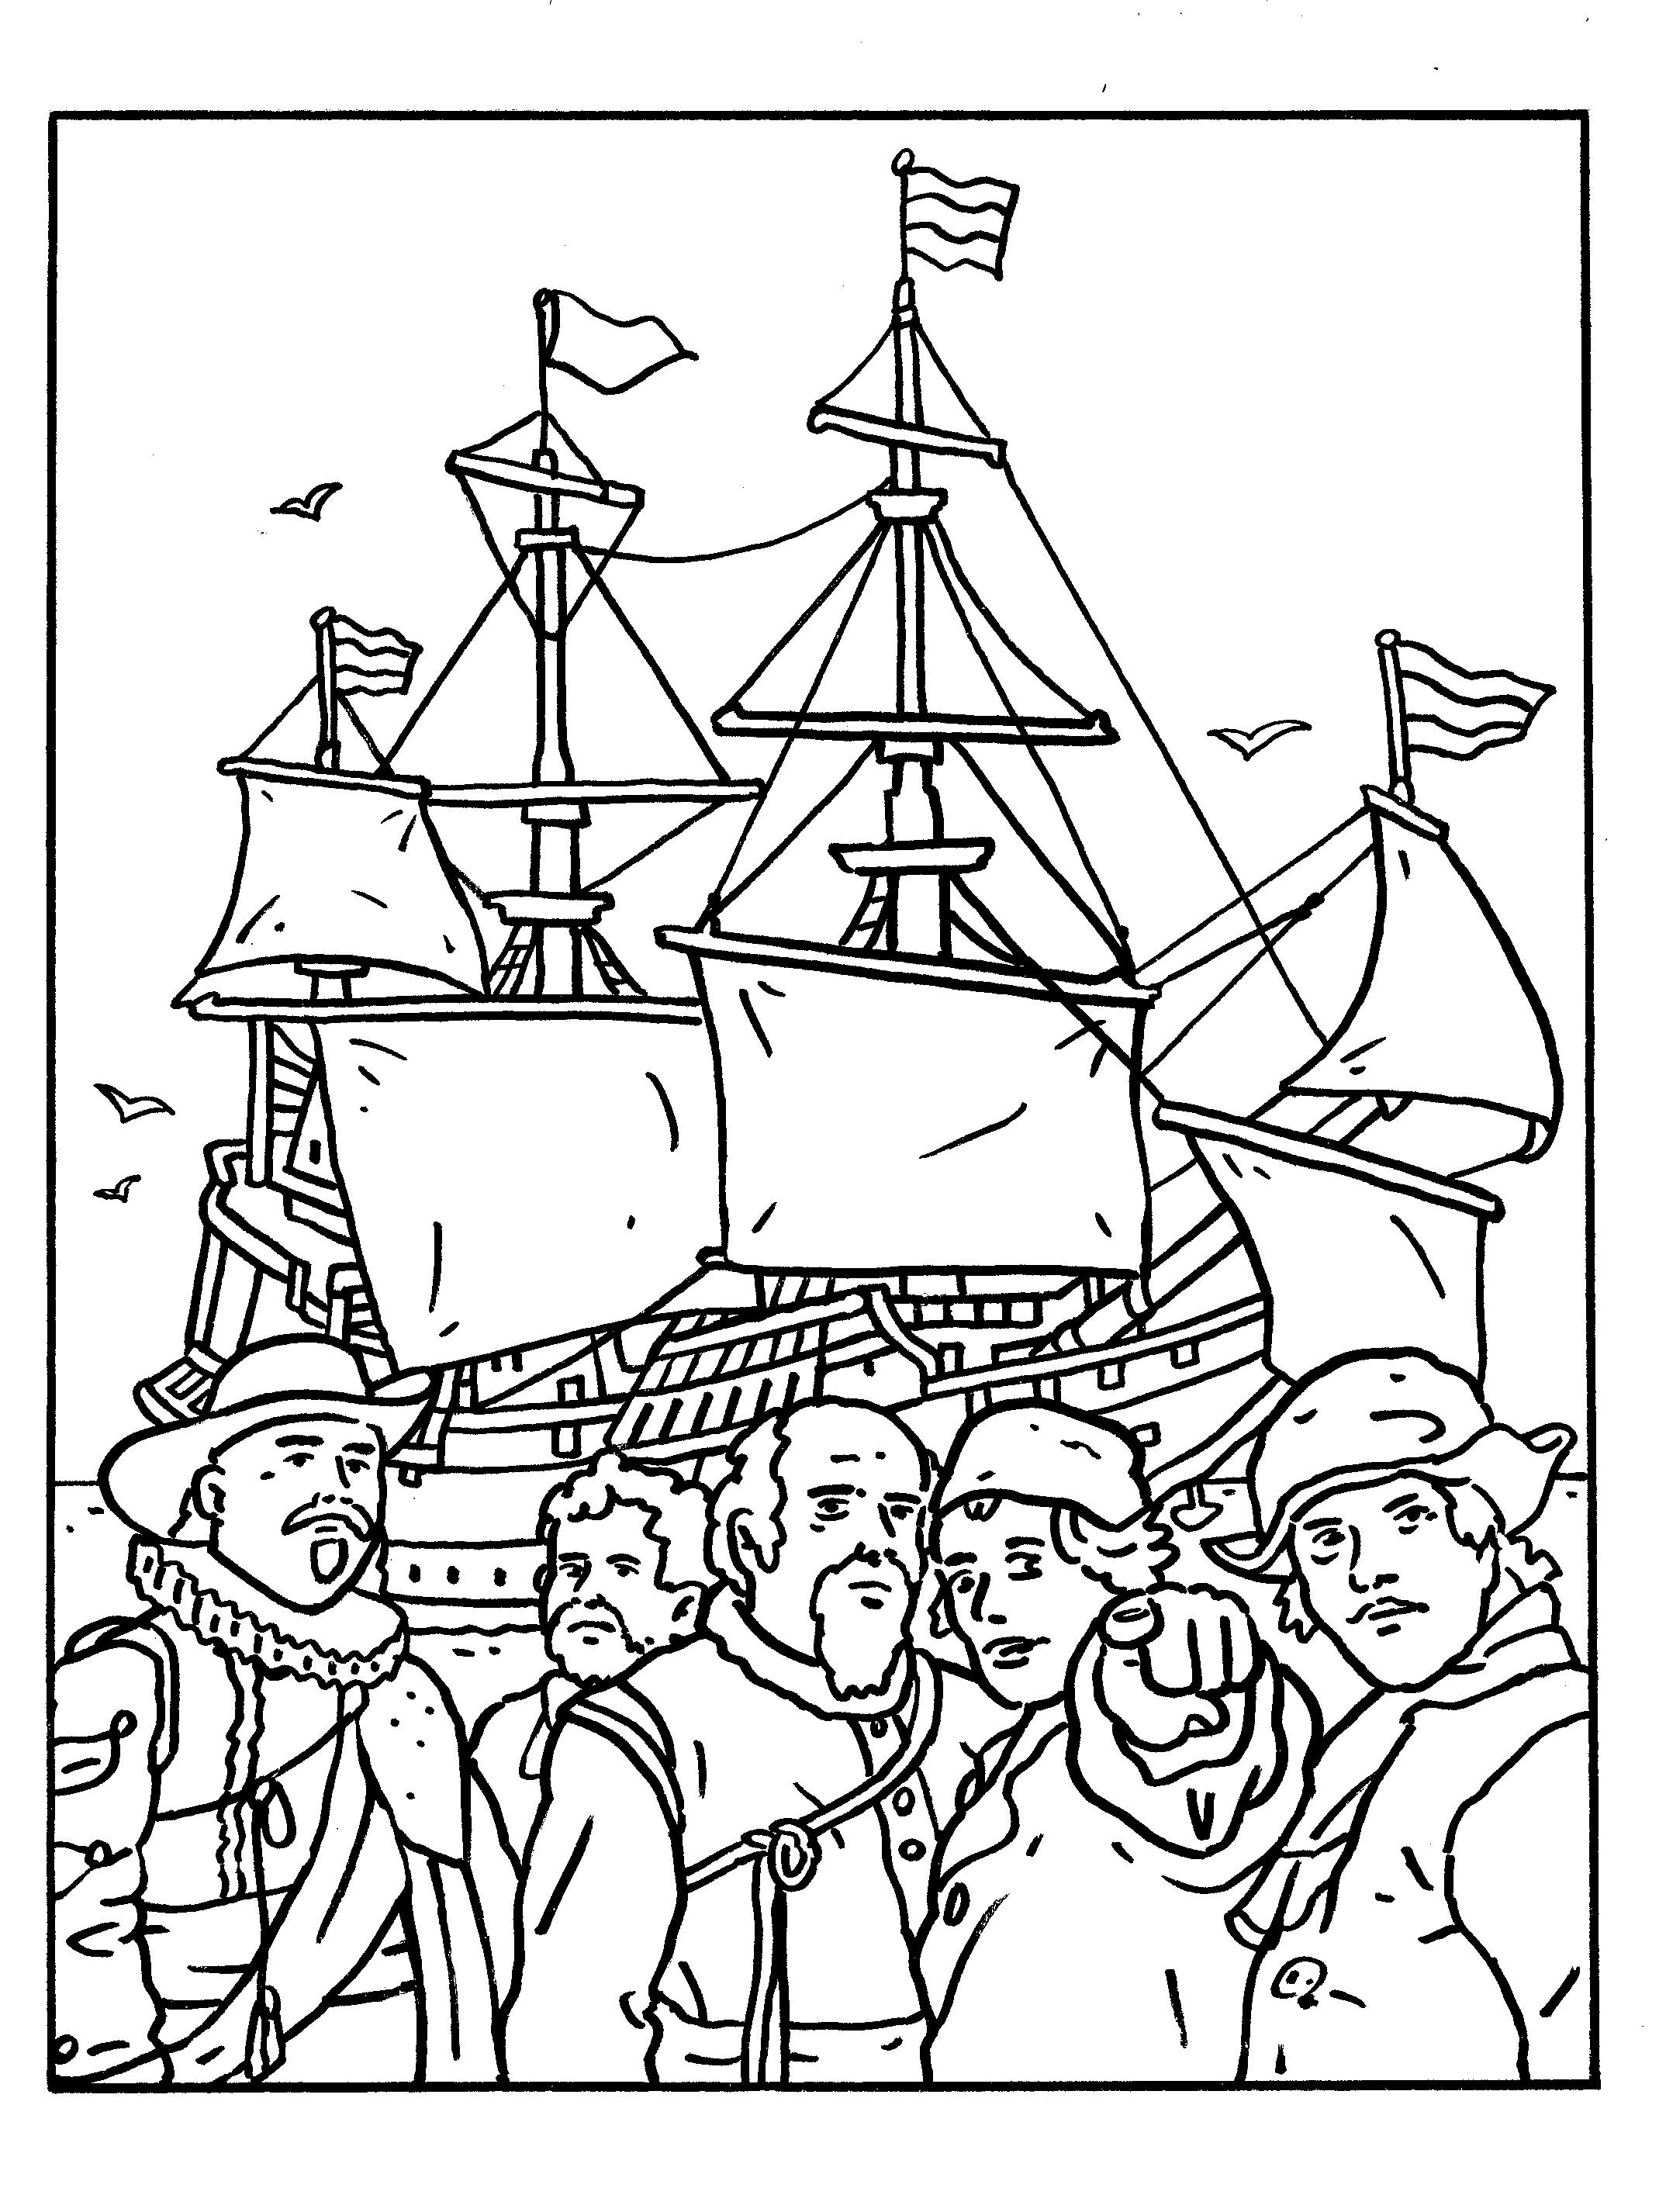 rembrandt coloring pages - photo#12